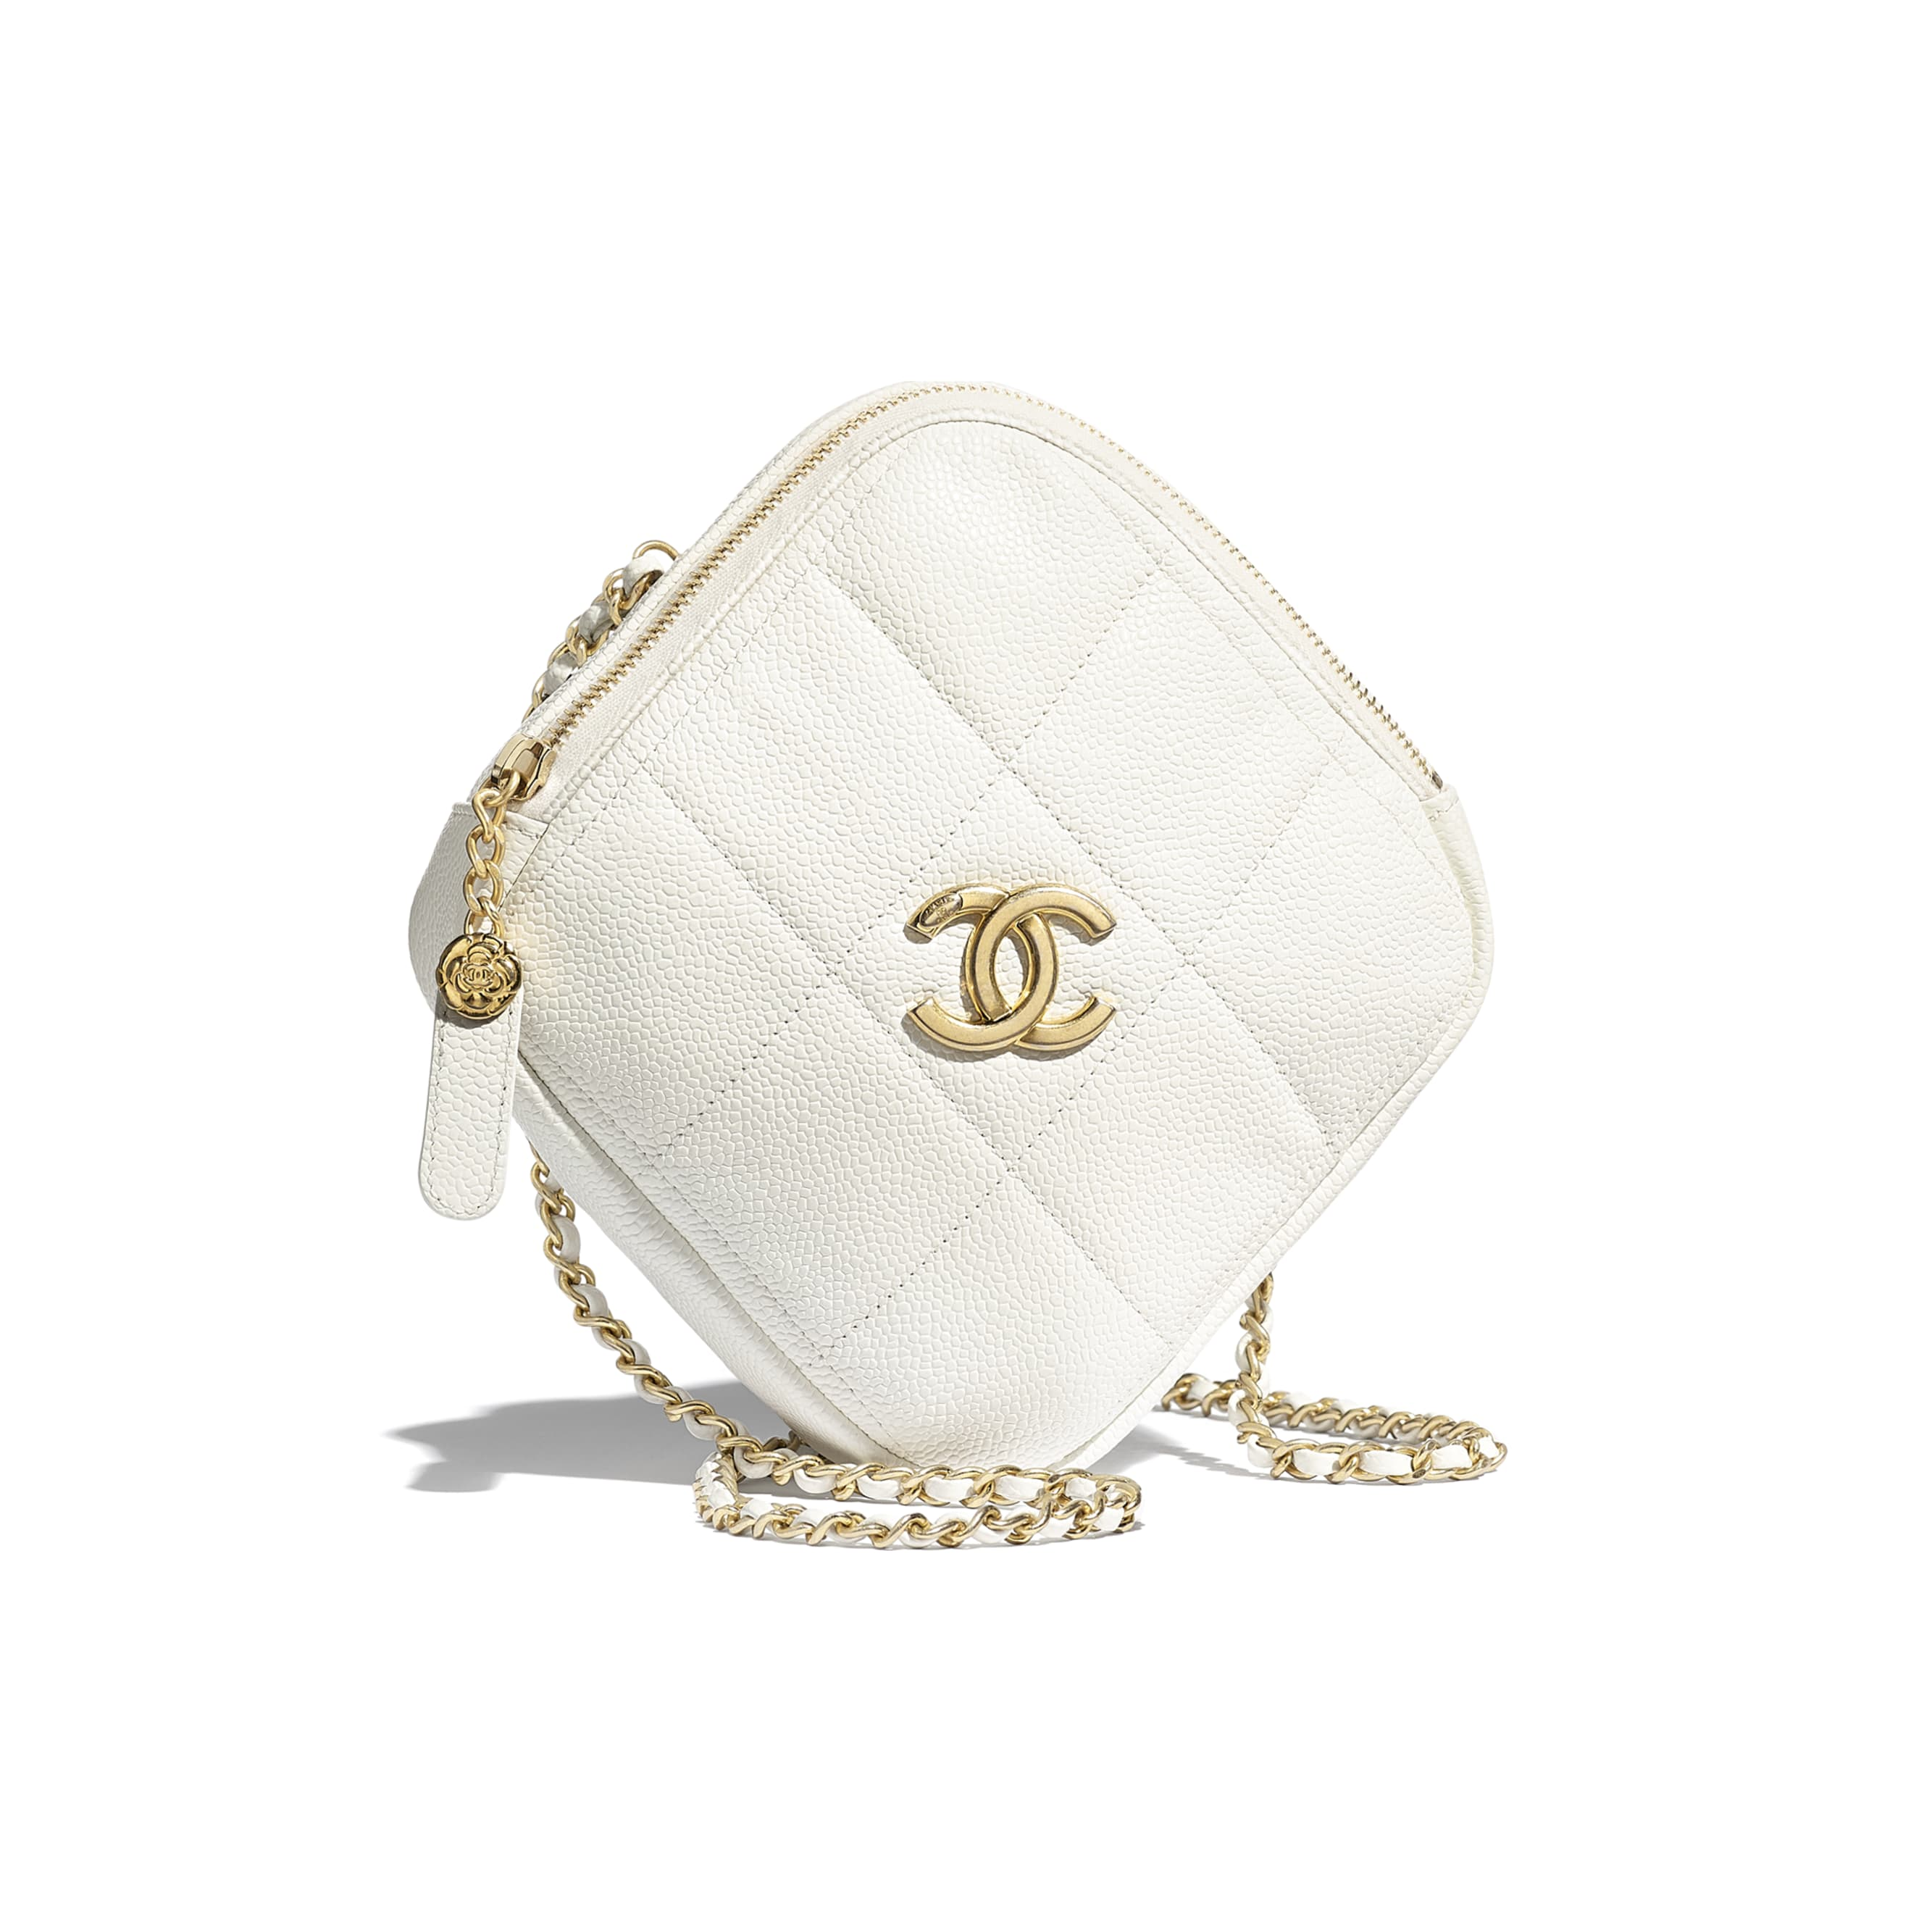 Small Diamond Bag - White - Grained Calfskin & Gold-Tone Metal - CHANEL - Default view - see standard sized version